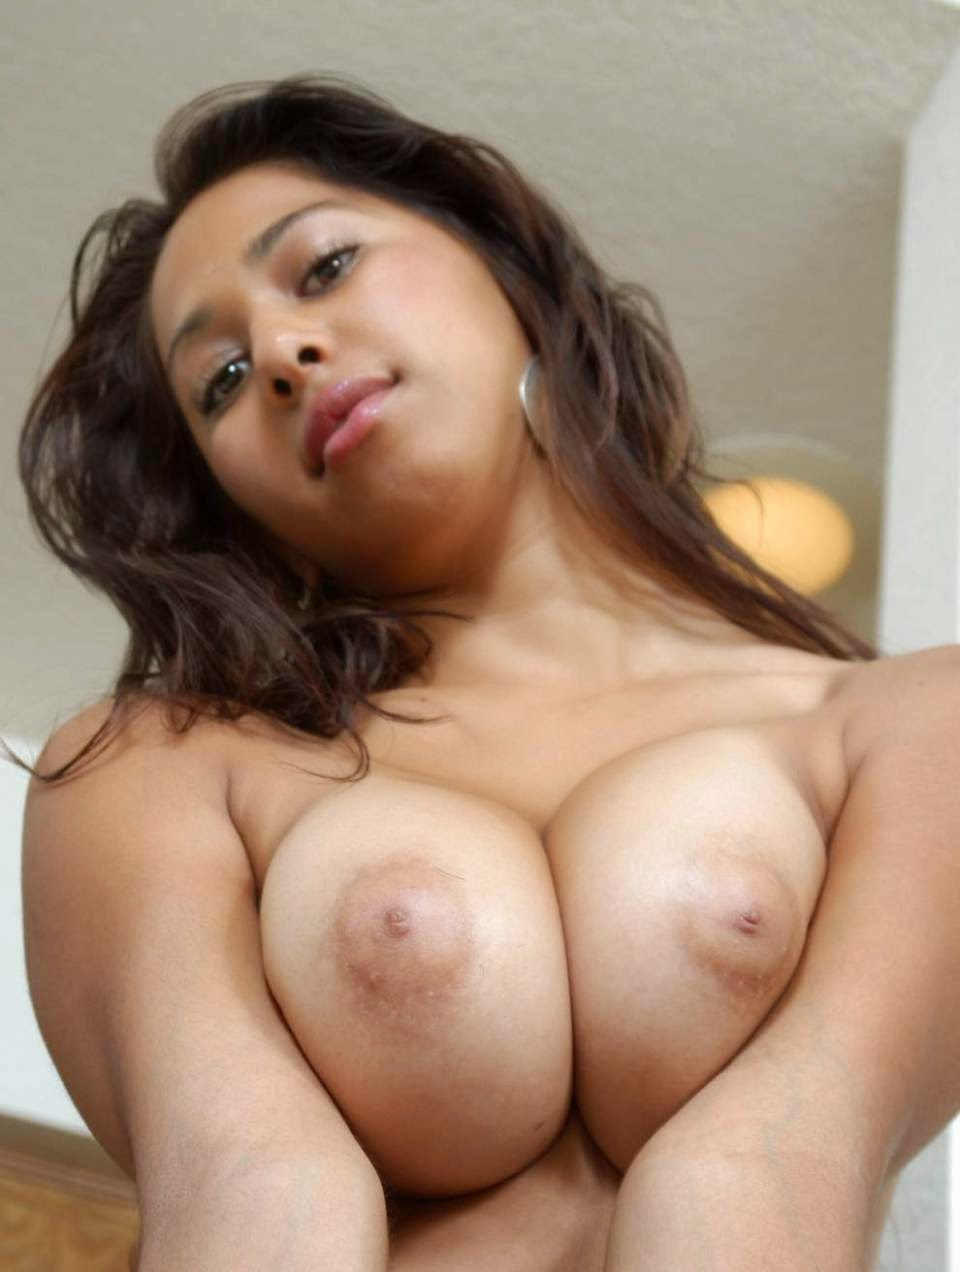 Hot nude big boobs girls